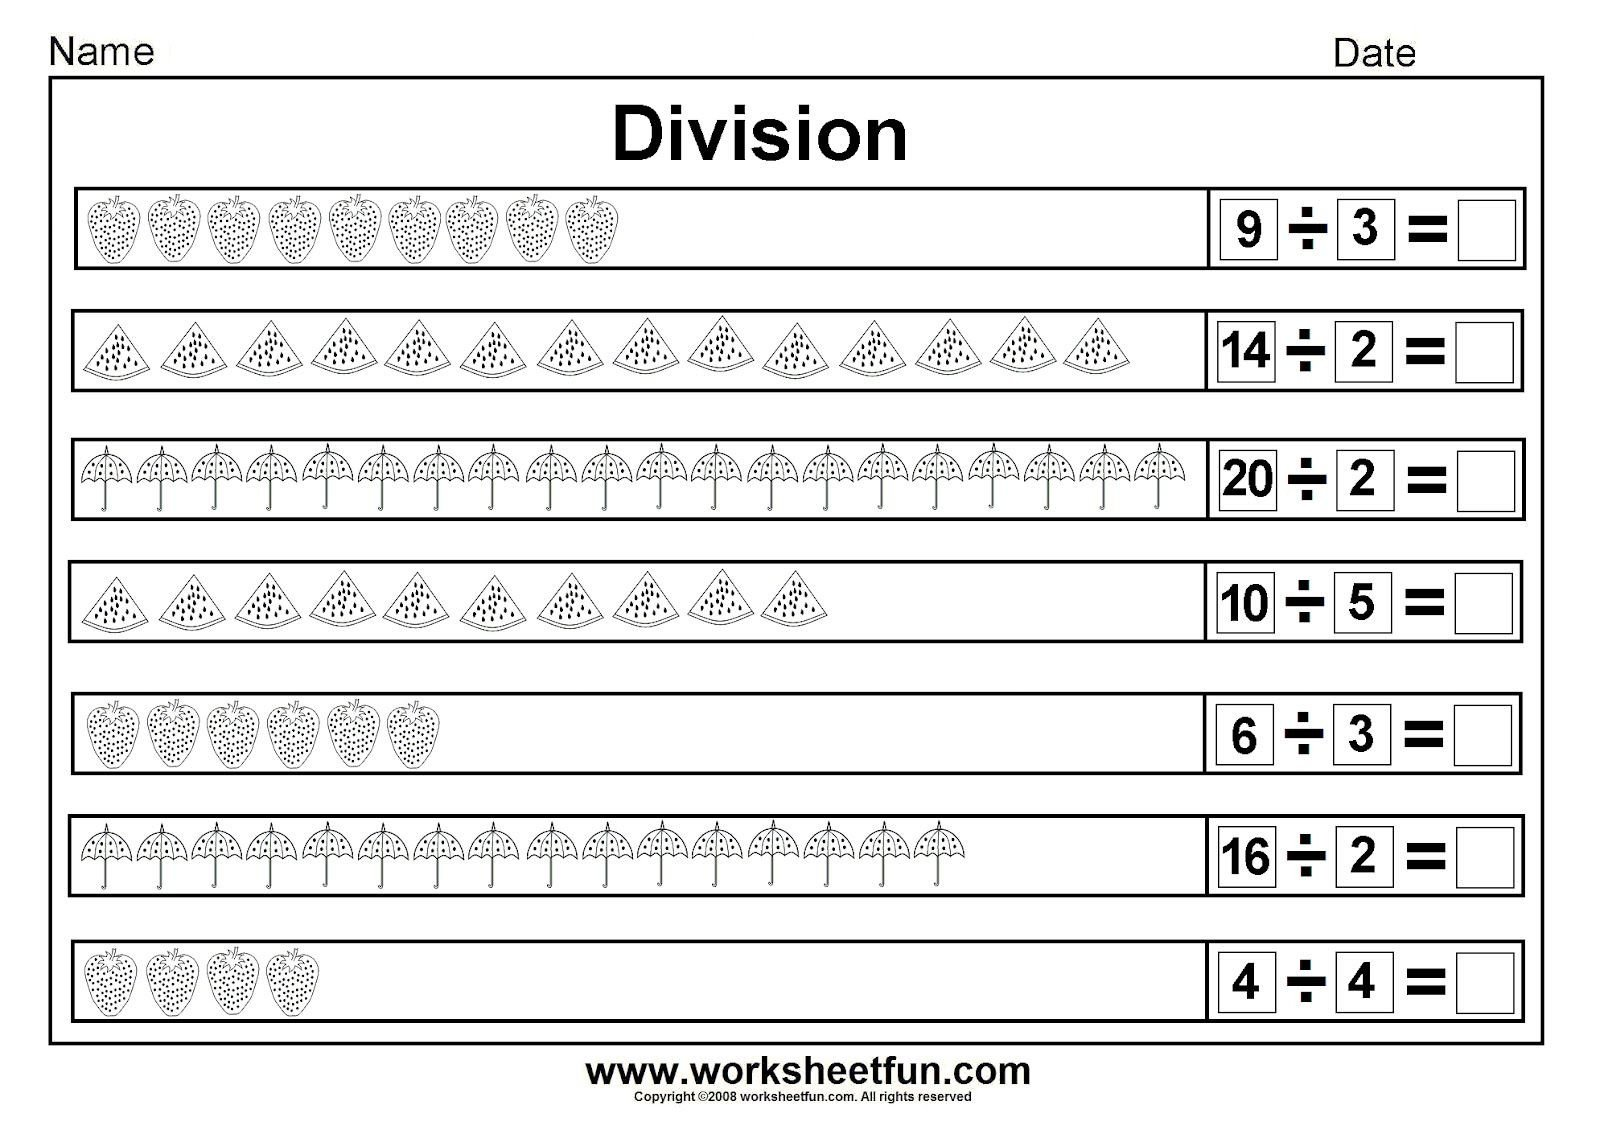 Beginner Division Worksheets with Pictures Worksheetfun Free Printable Worksheets